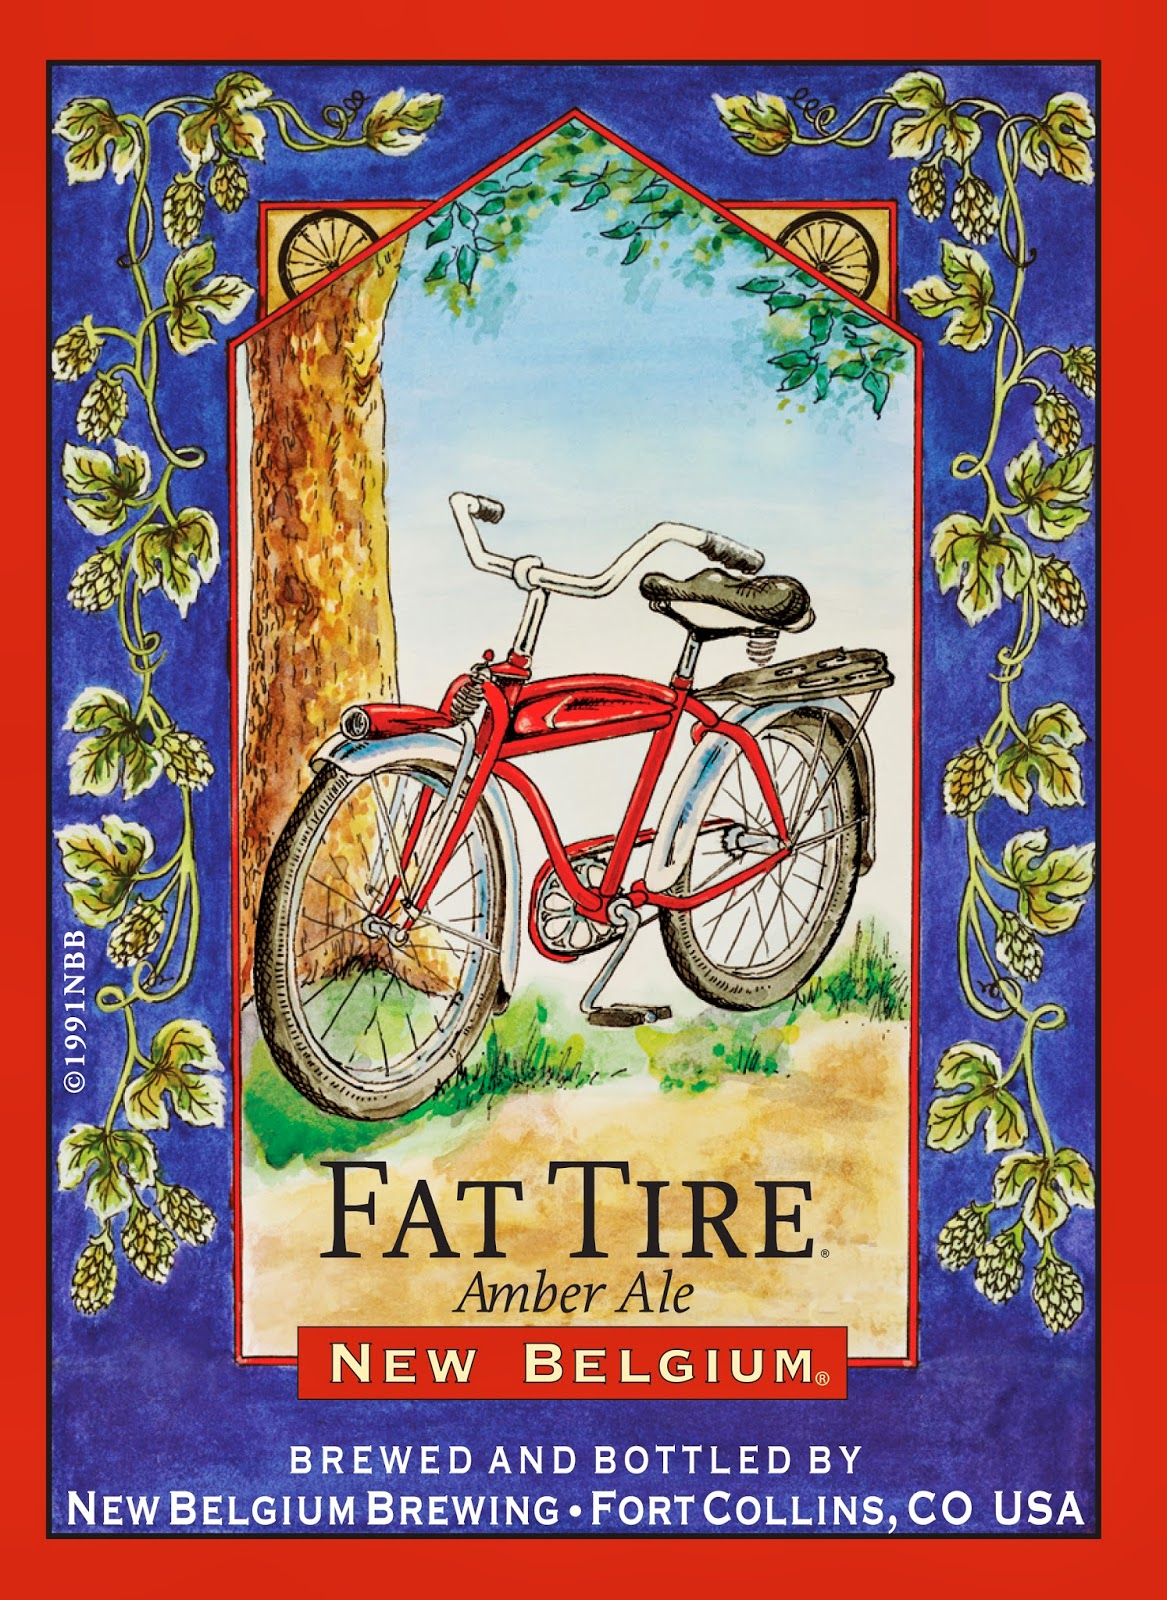 For New Belgium Brewing, based in Fort Collins, Colorado, Environmental Stewardship has been a core value since the company's inception.